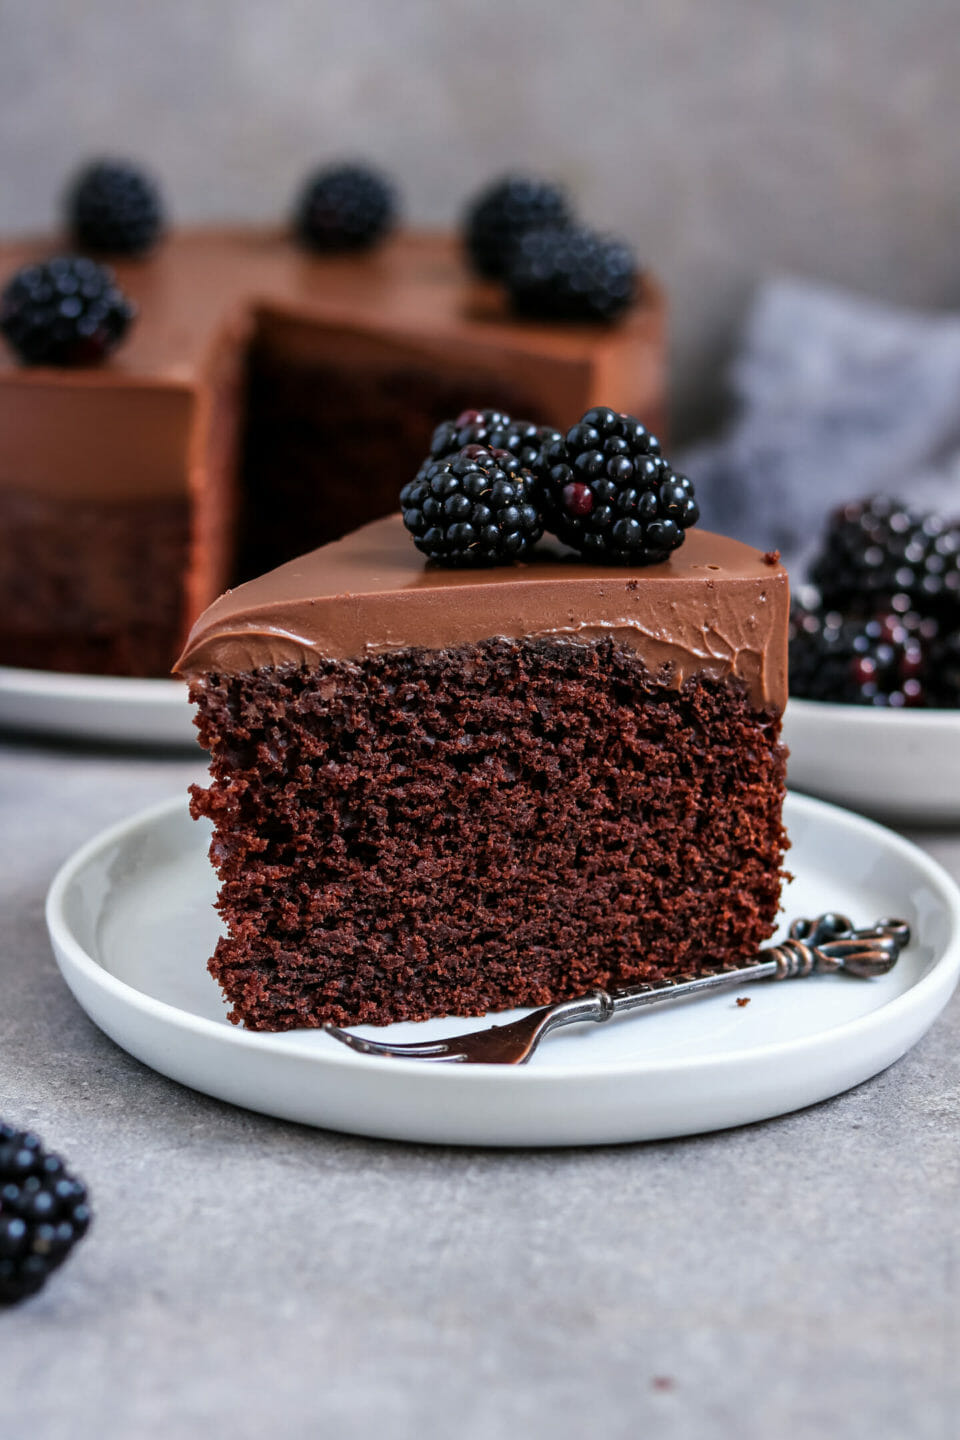 Fluffy chocolate cake with creamy chocolate frosting and blackberries.